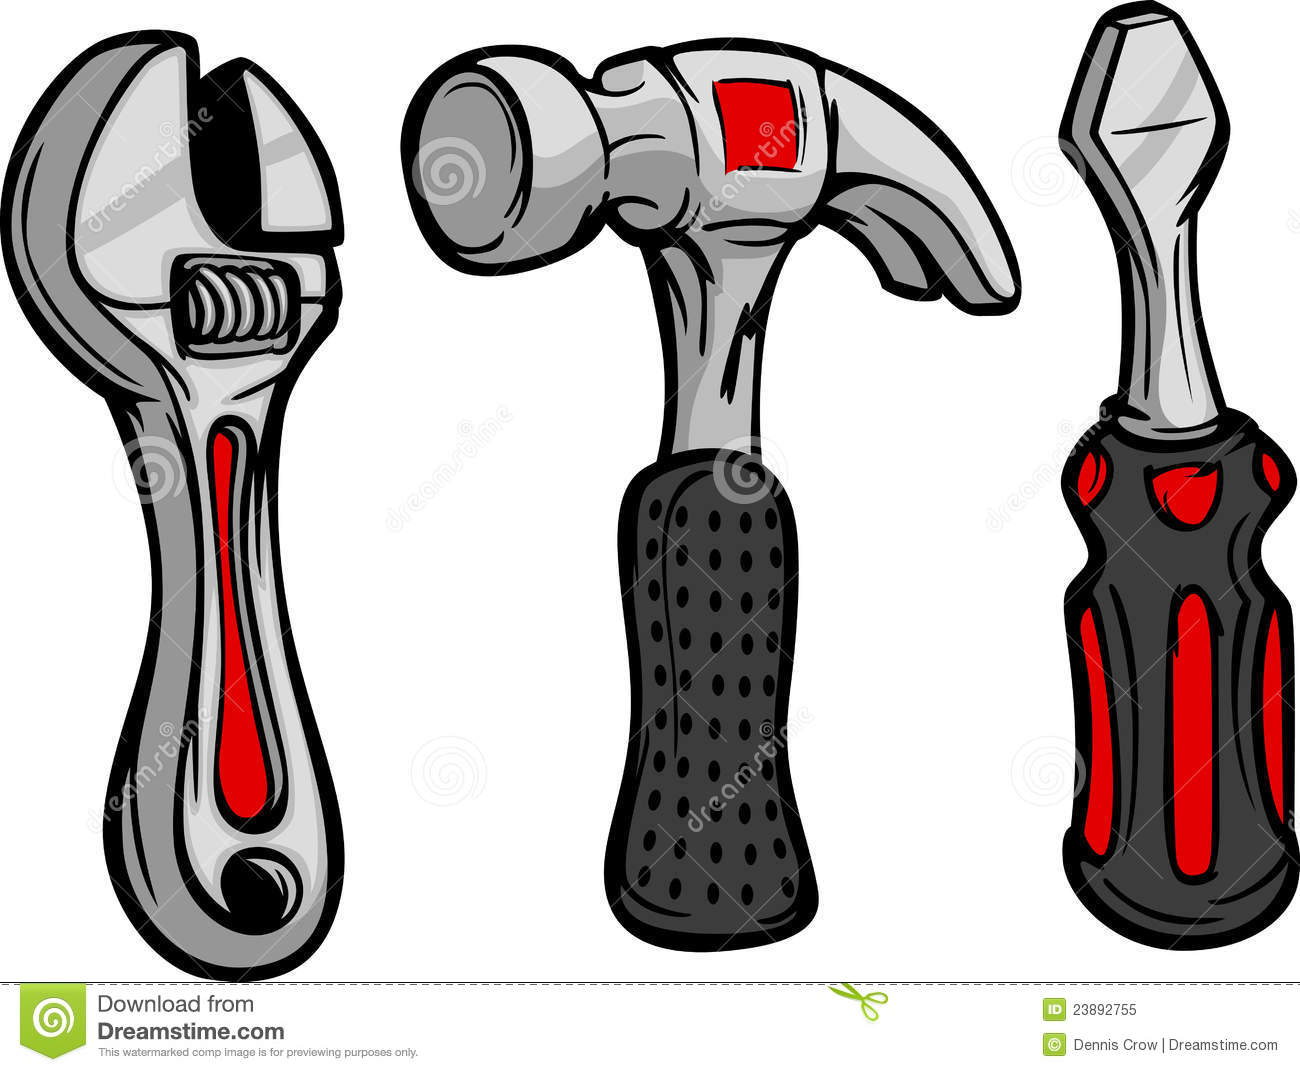 Cartoon Wrench Hammer And Driver Stock Vector Illustration Of